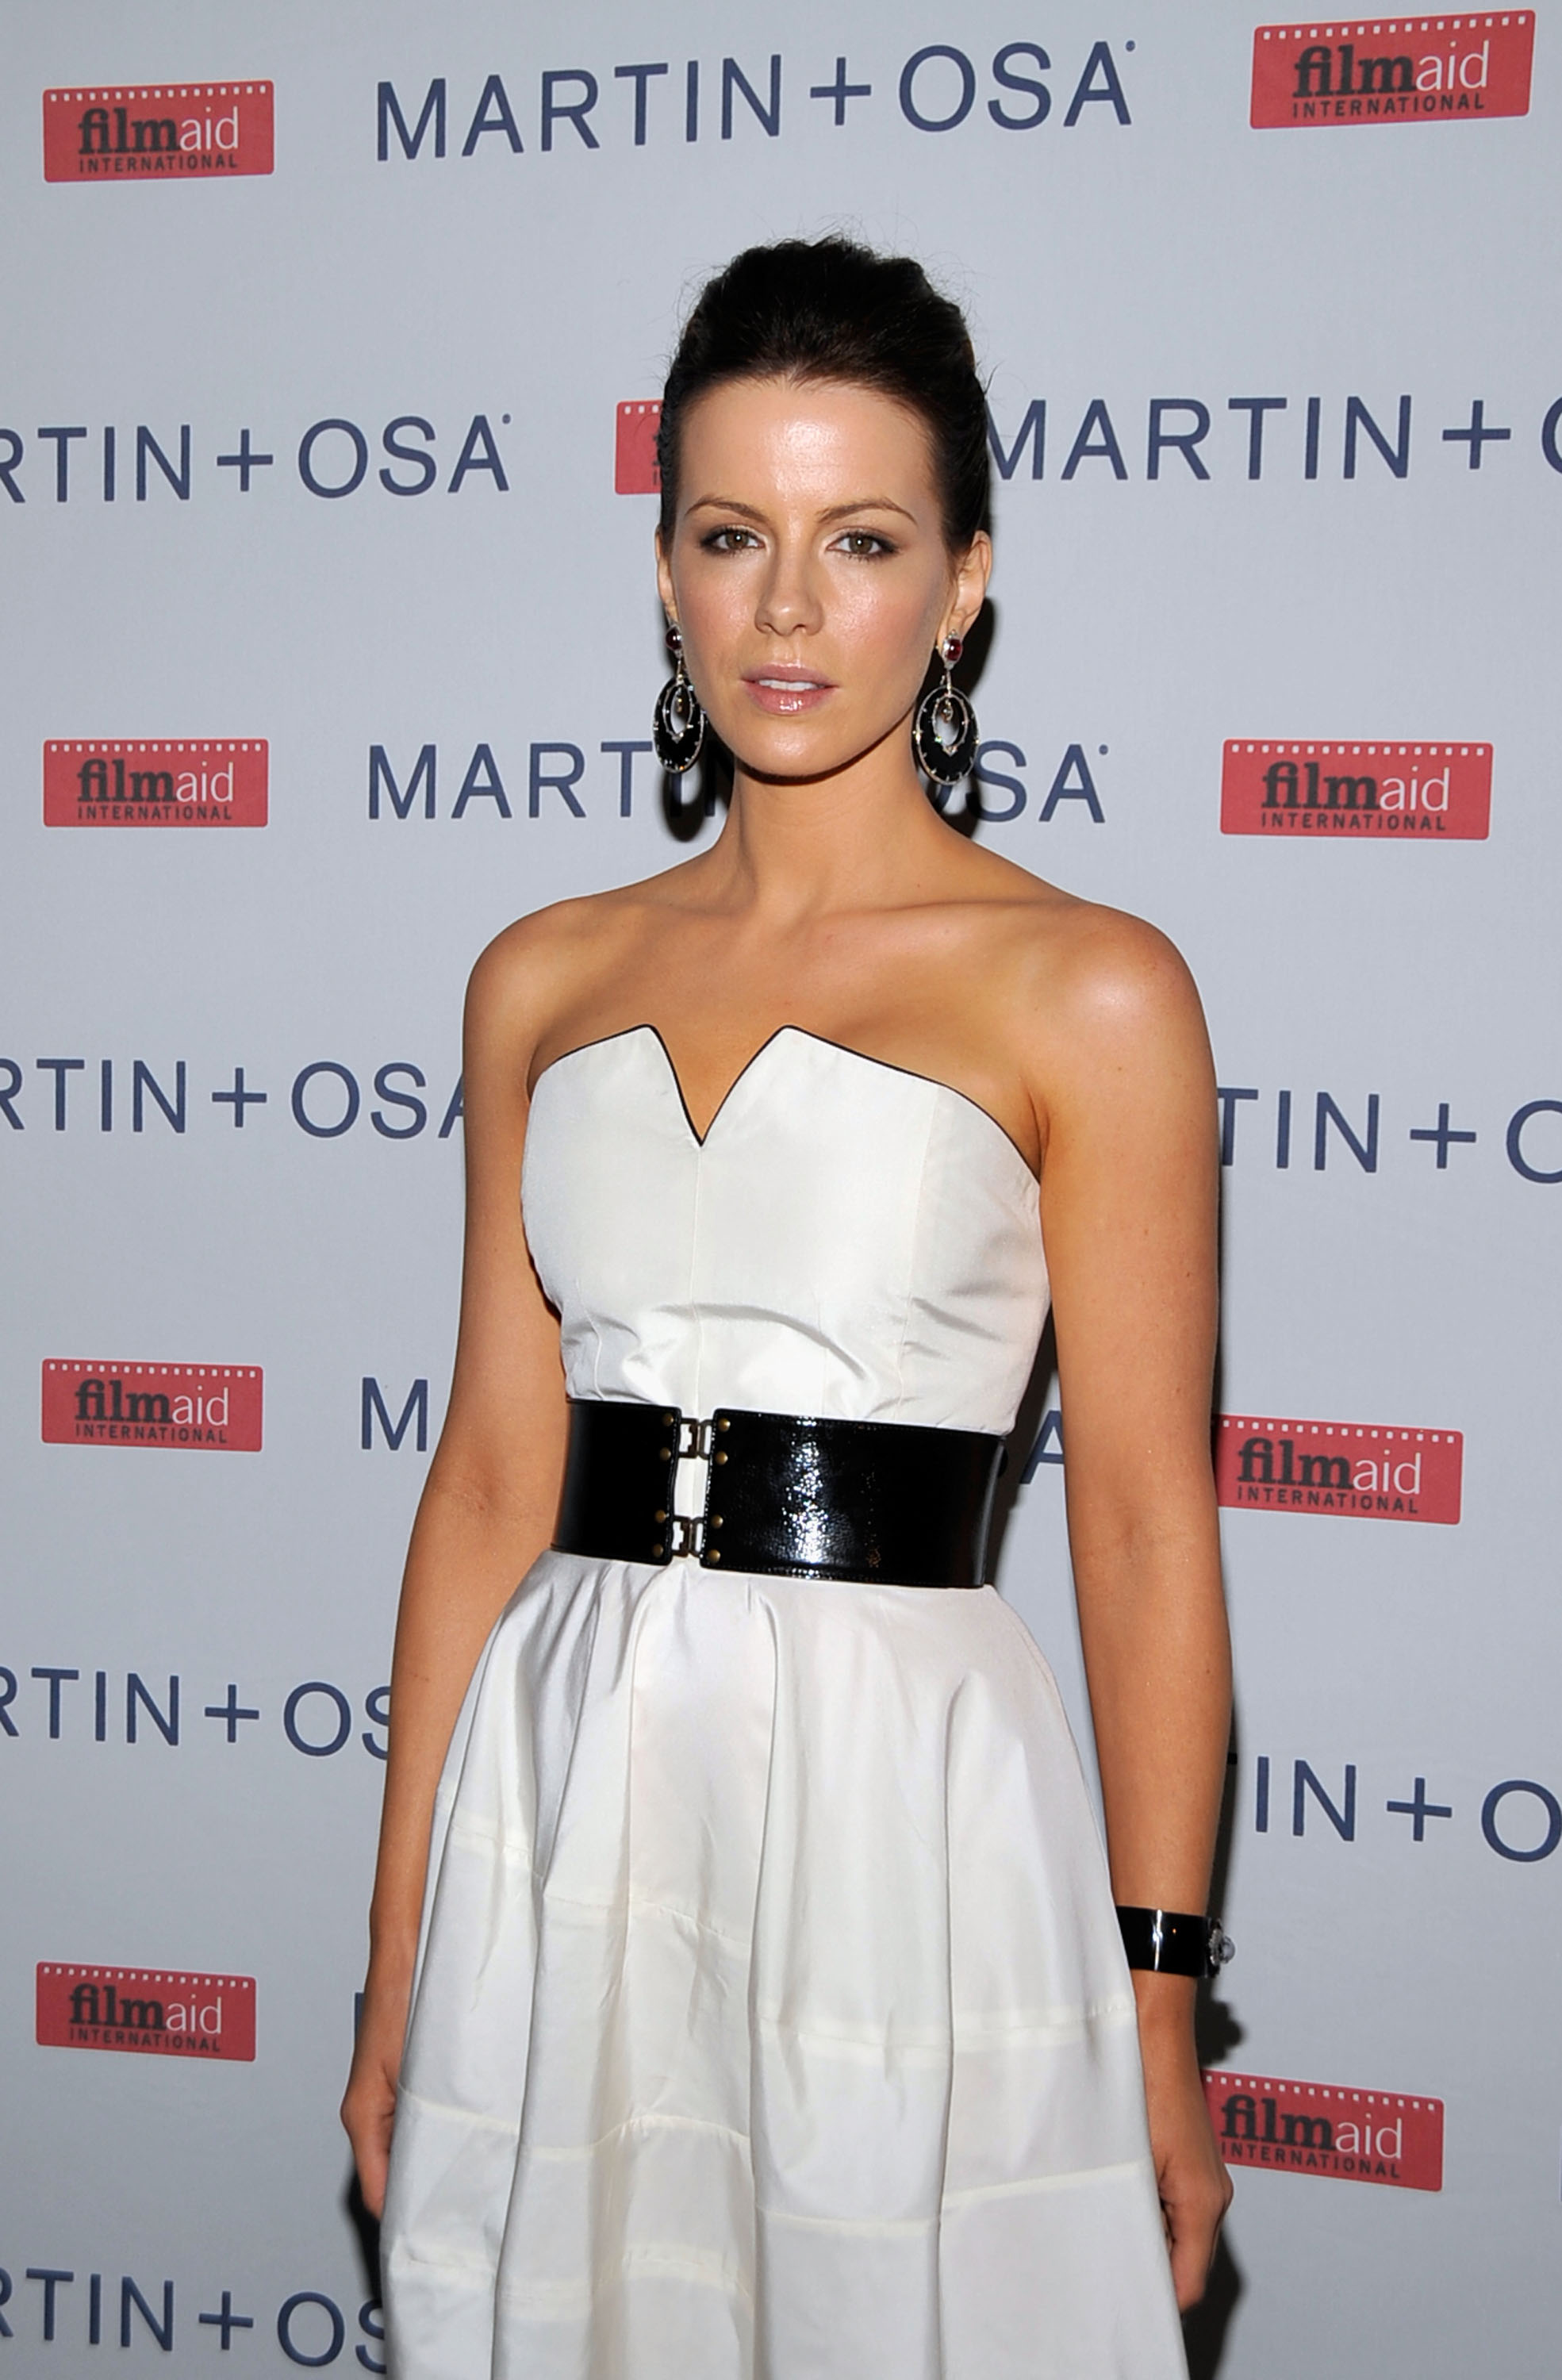 08880_Celebutopia-Kate_Beckinsale-Martin_9_Osa81s_Screening_Of_All_About_Eve_in_Hollywood-02_122_479lo.jpg